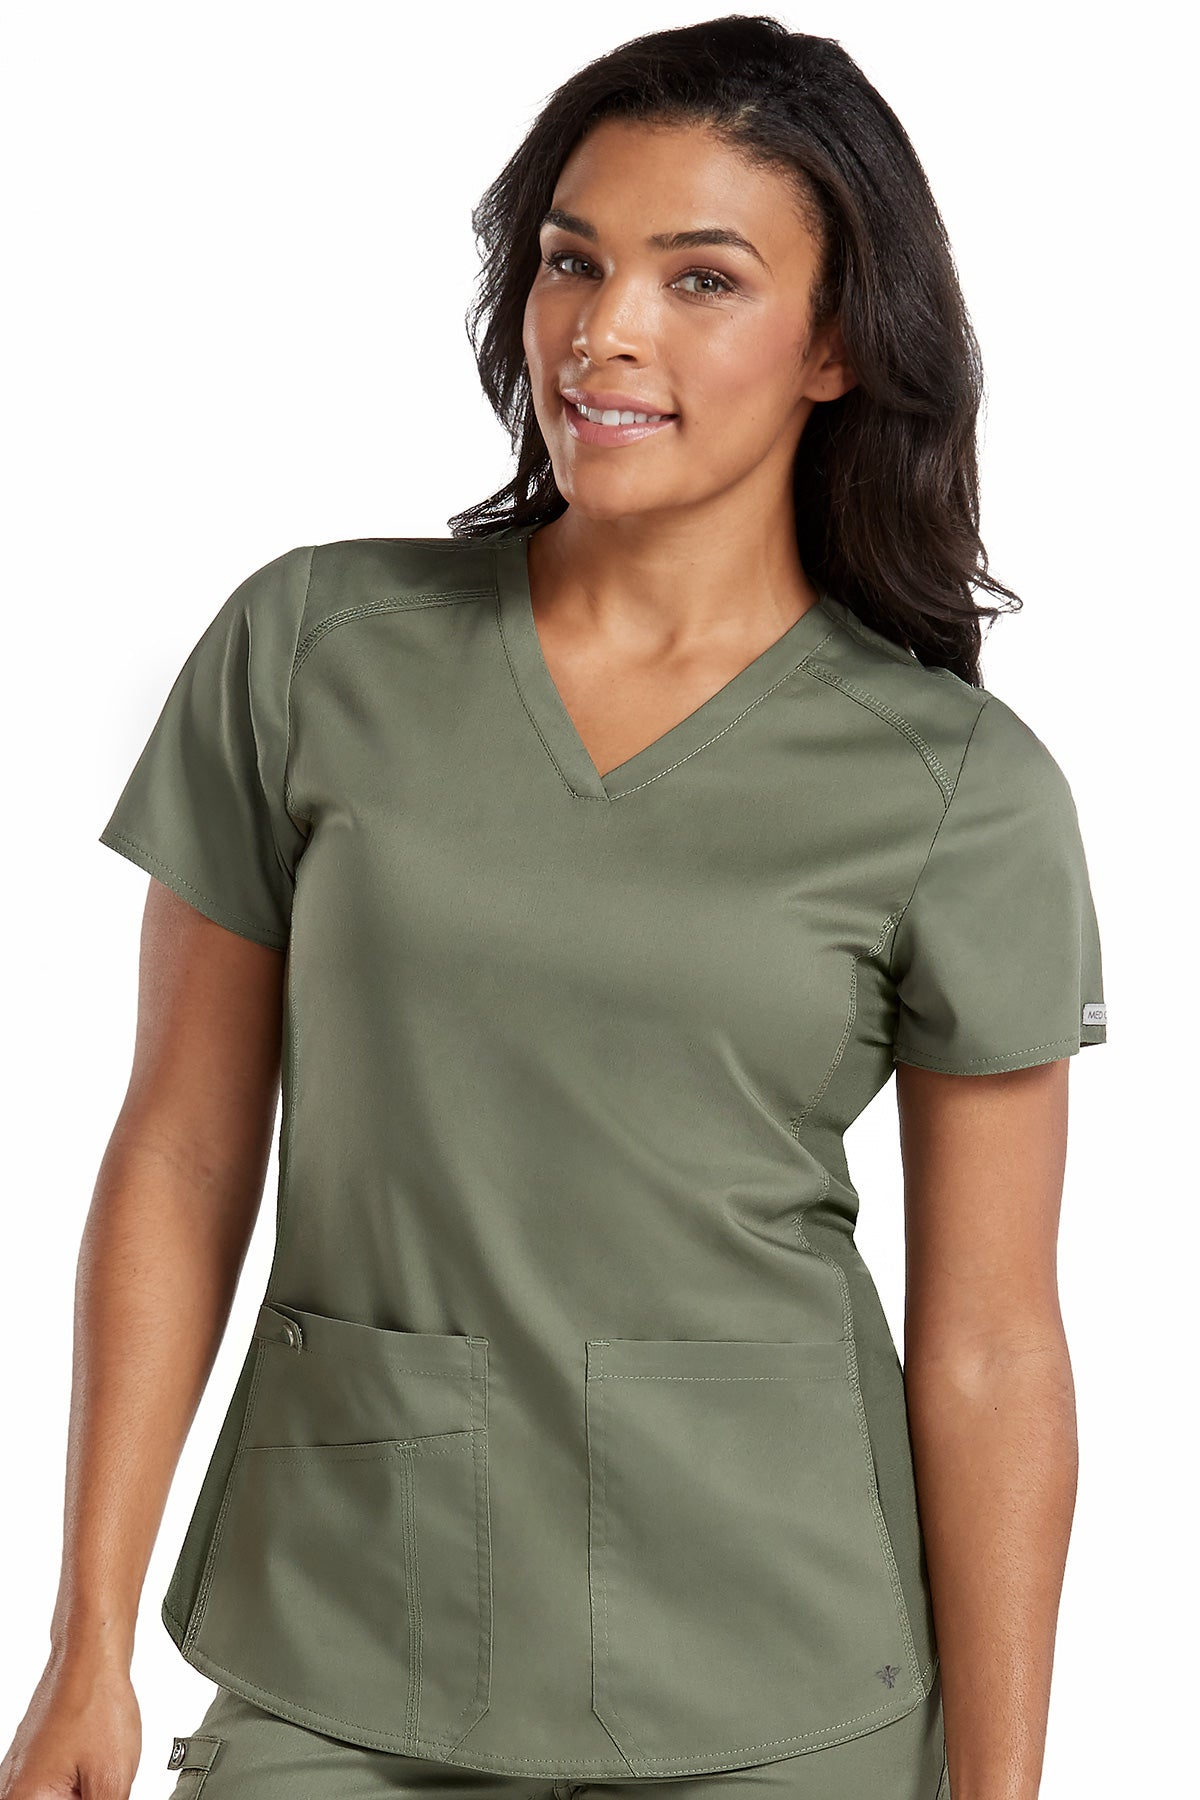 Med Couture Touch 7459 V-Neck Shirttail Top